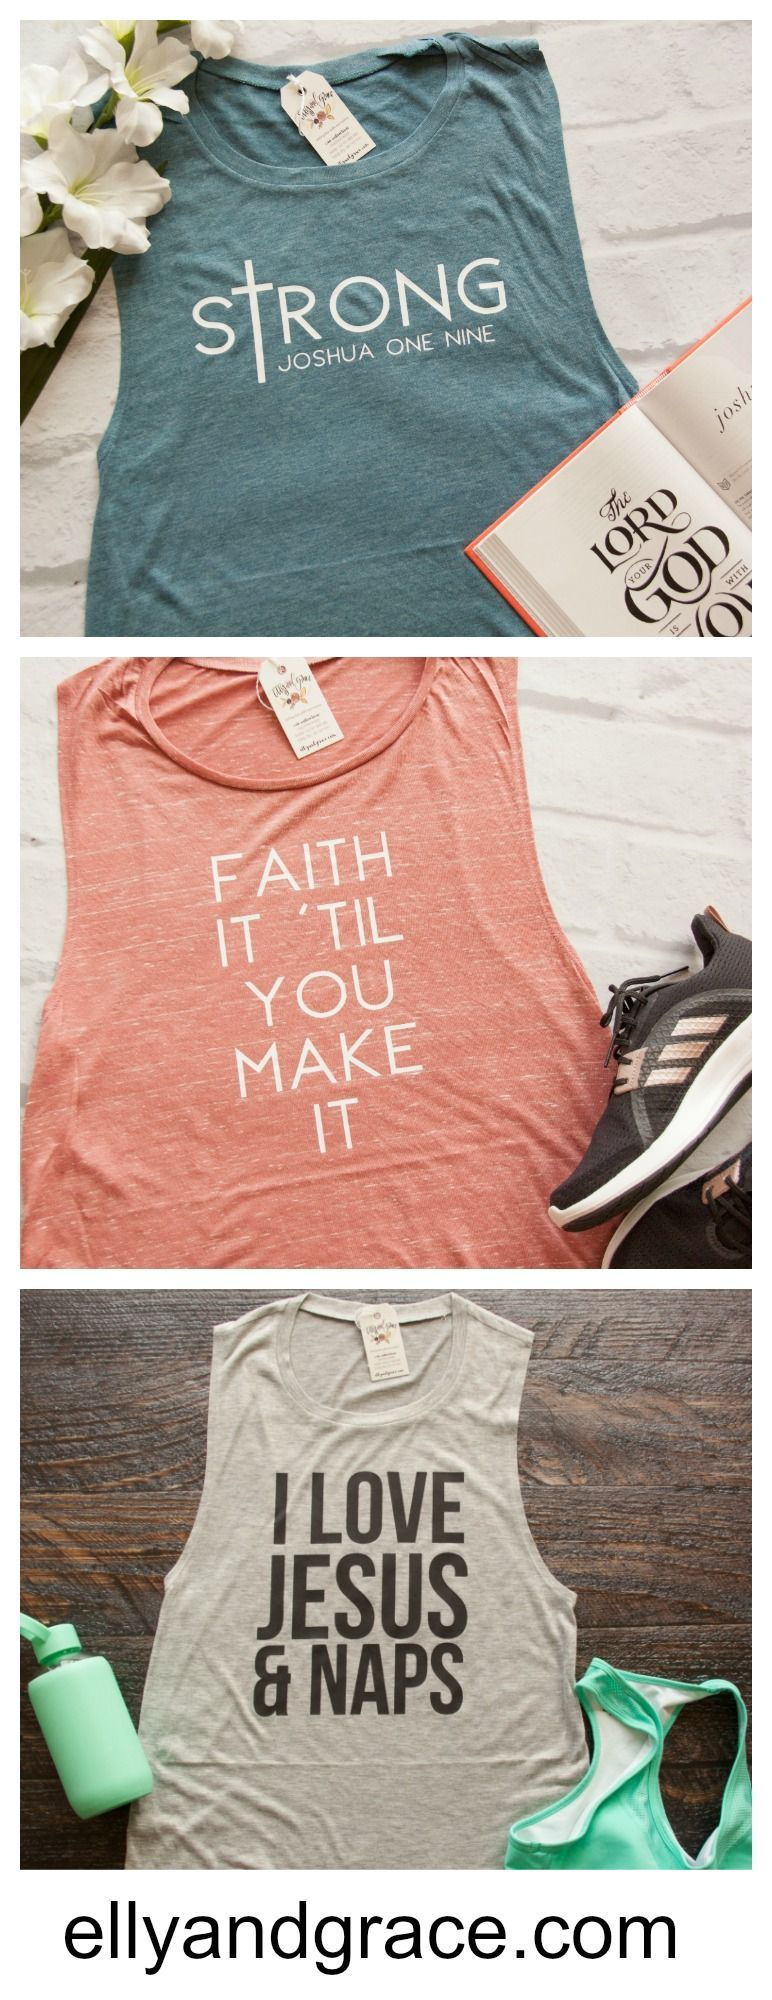 09b8f89f13f345 NEW muscle tanks by ellyandgrace! We love these christian tank tops for  women!